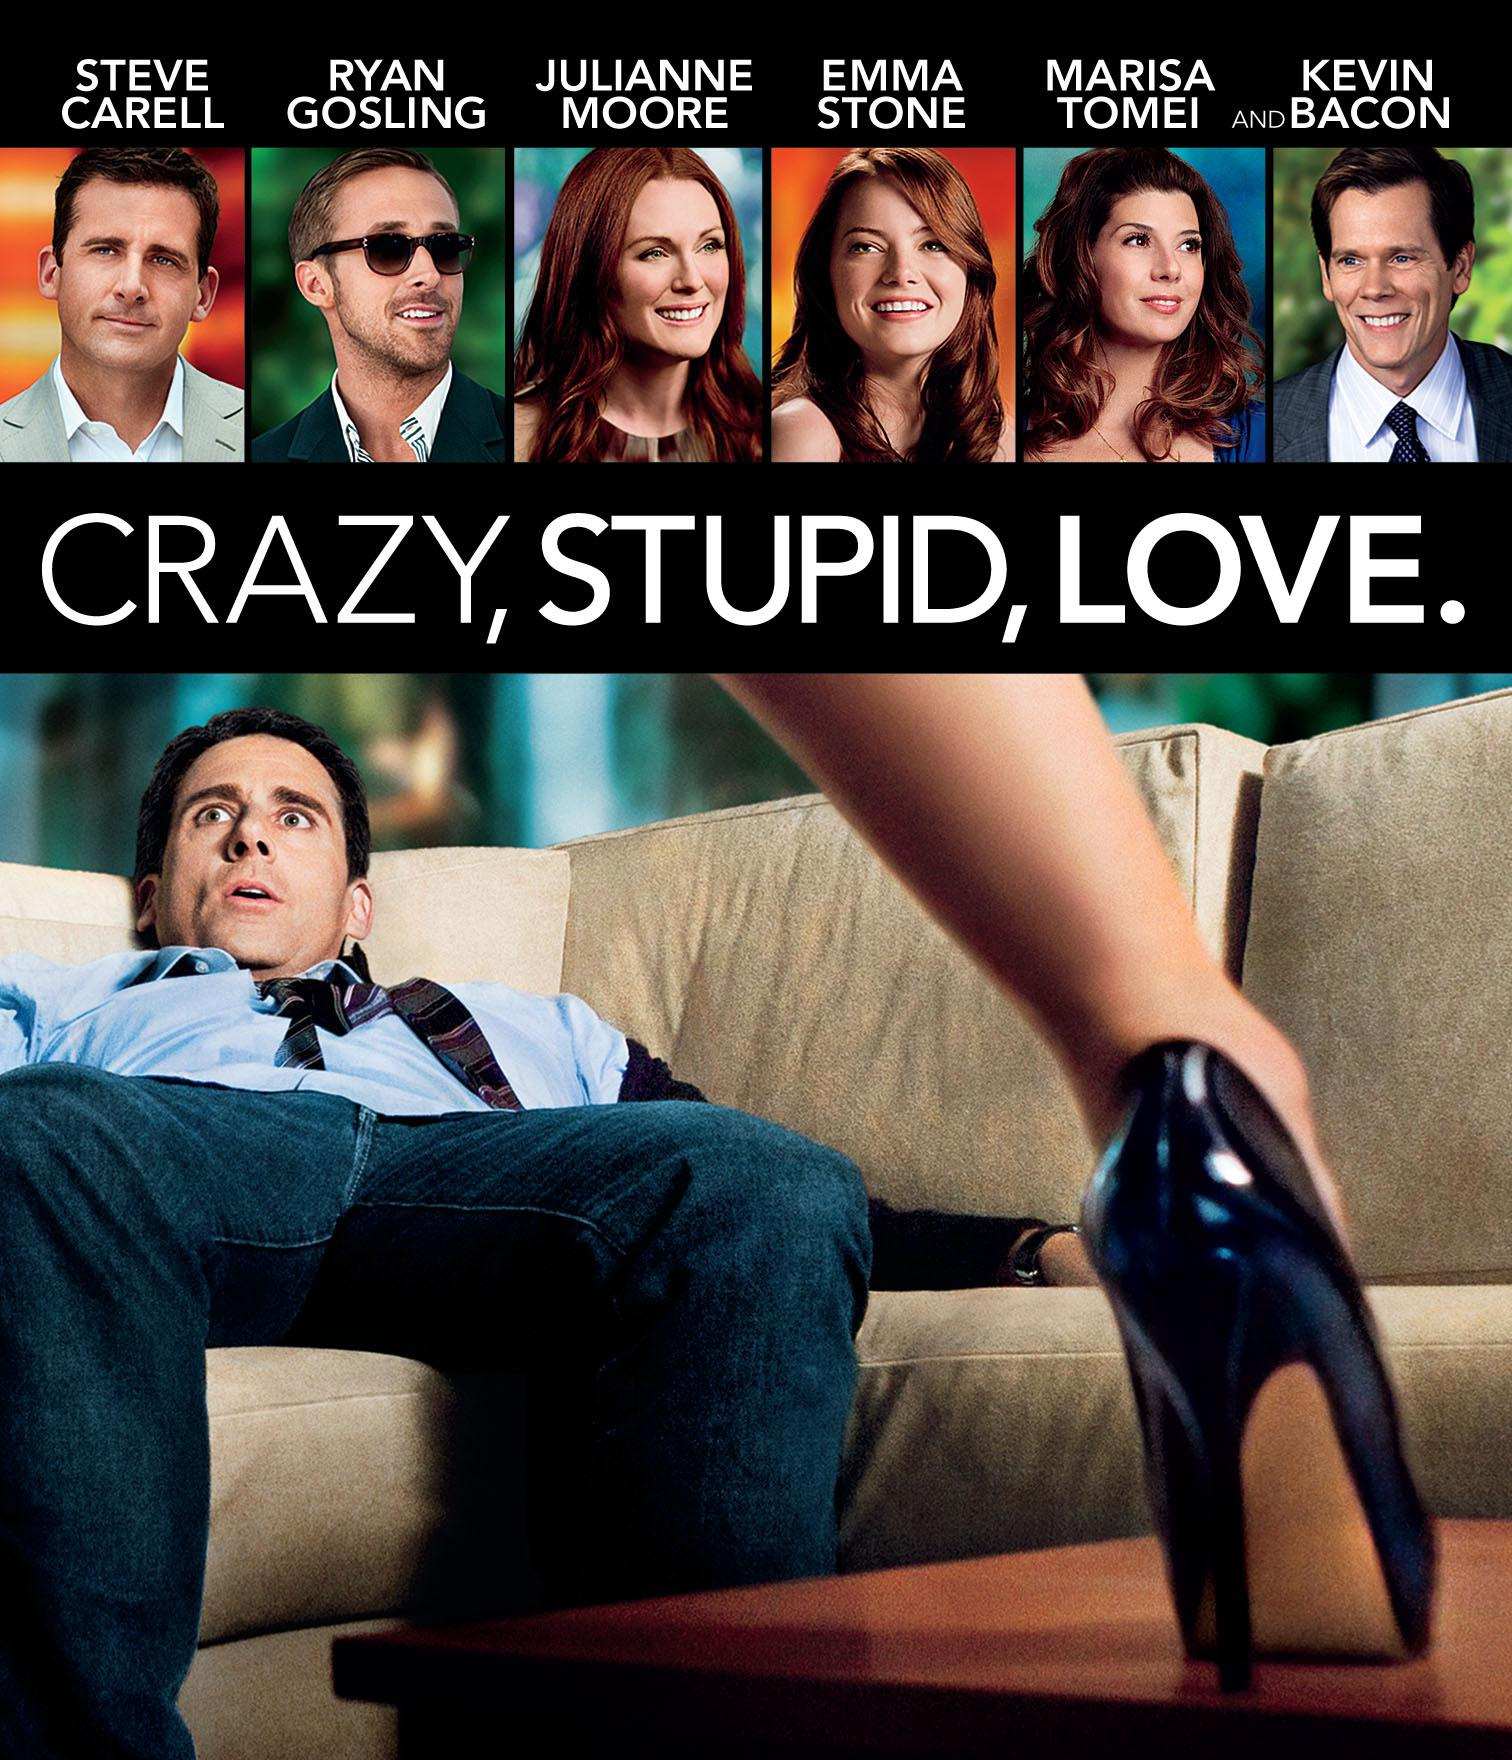 Crazy, Stupid, Love - Steve Carell - Ryan Gosling - Julianne Moore - Emma Stone - Marisa Tomei - Kevin Bacon